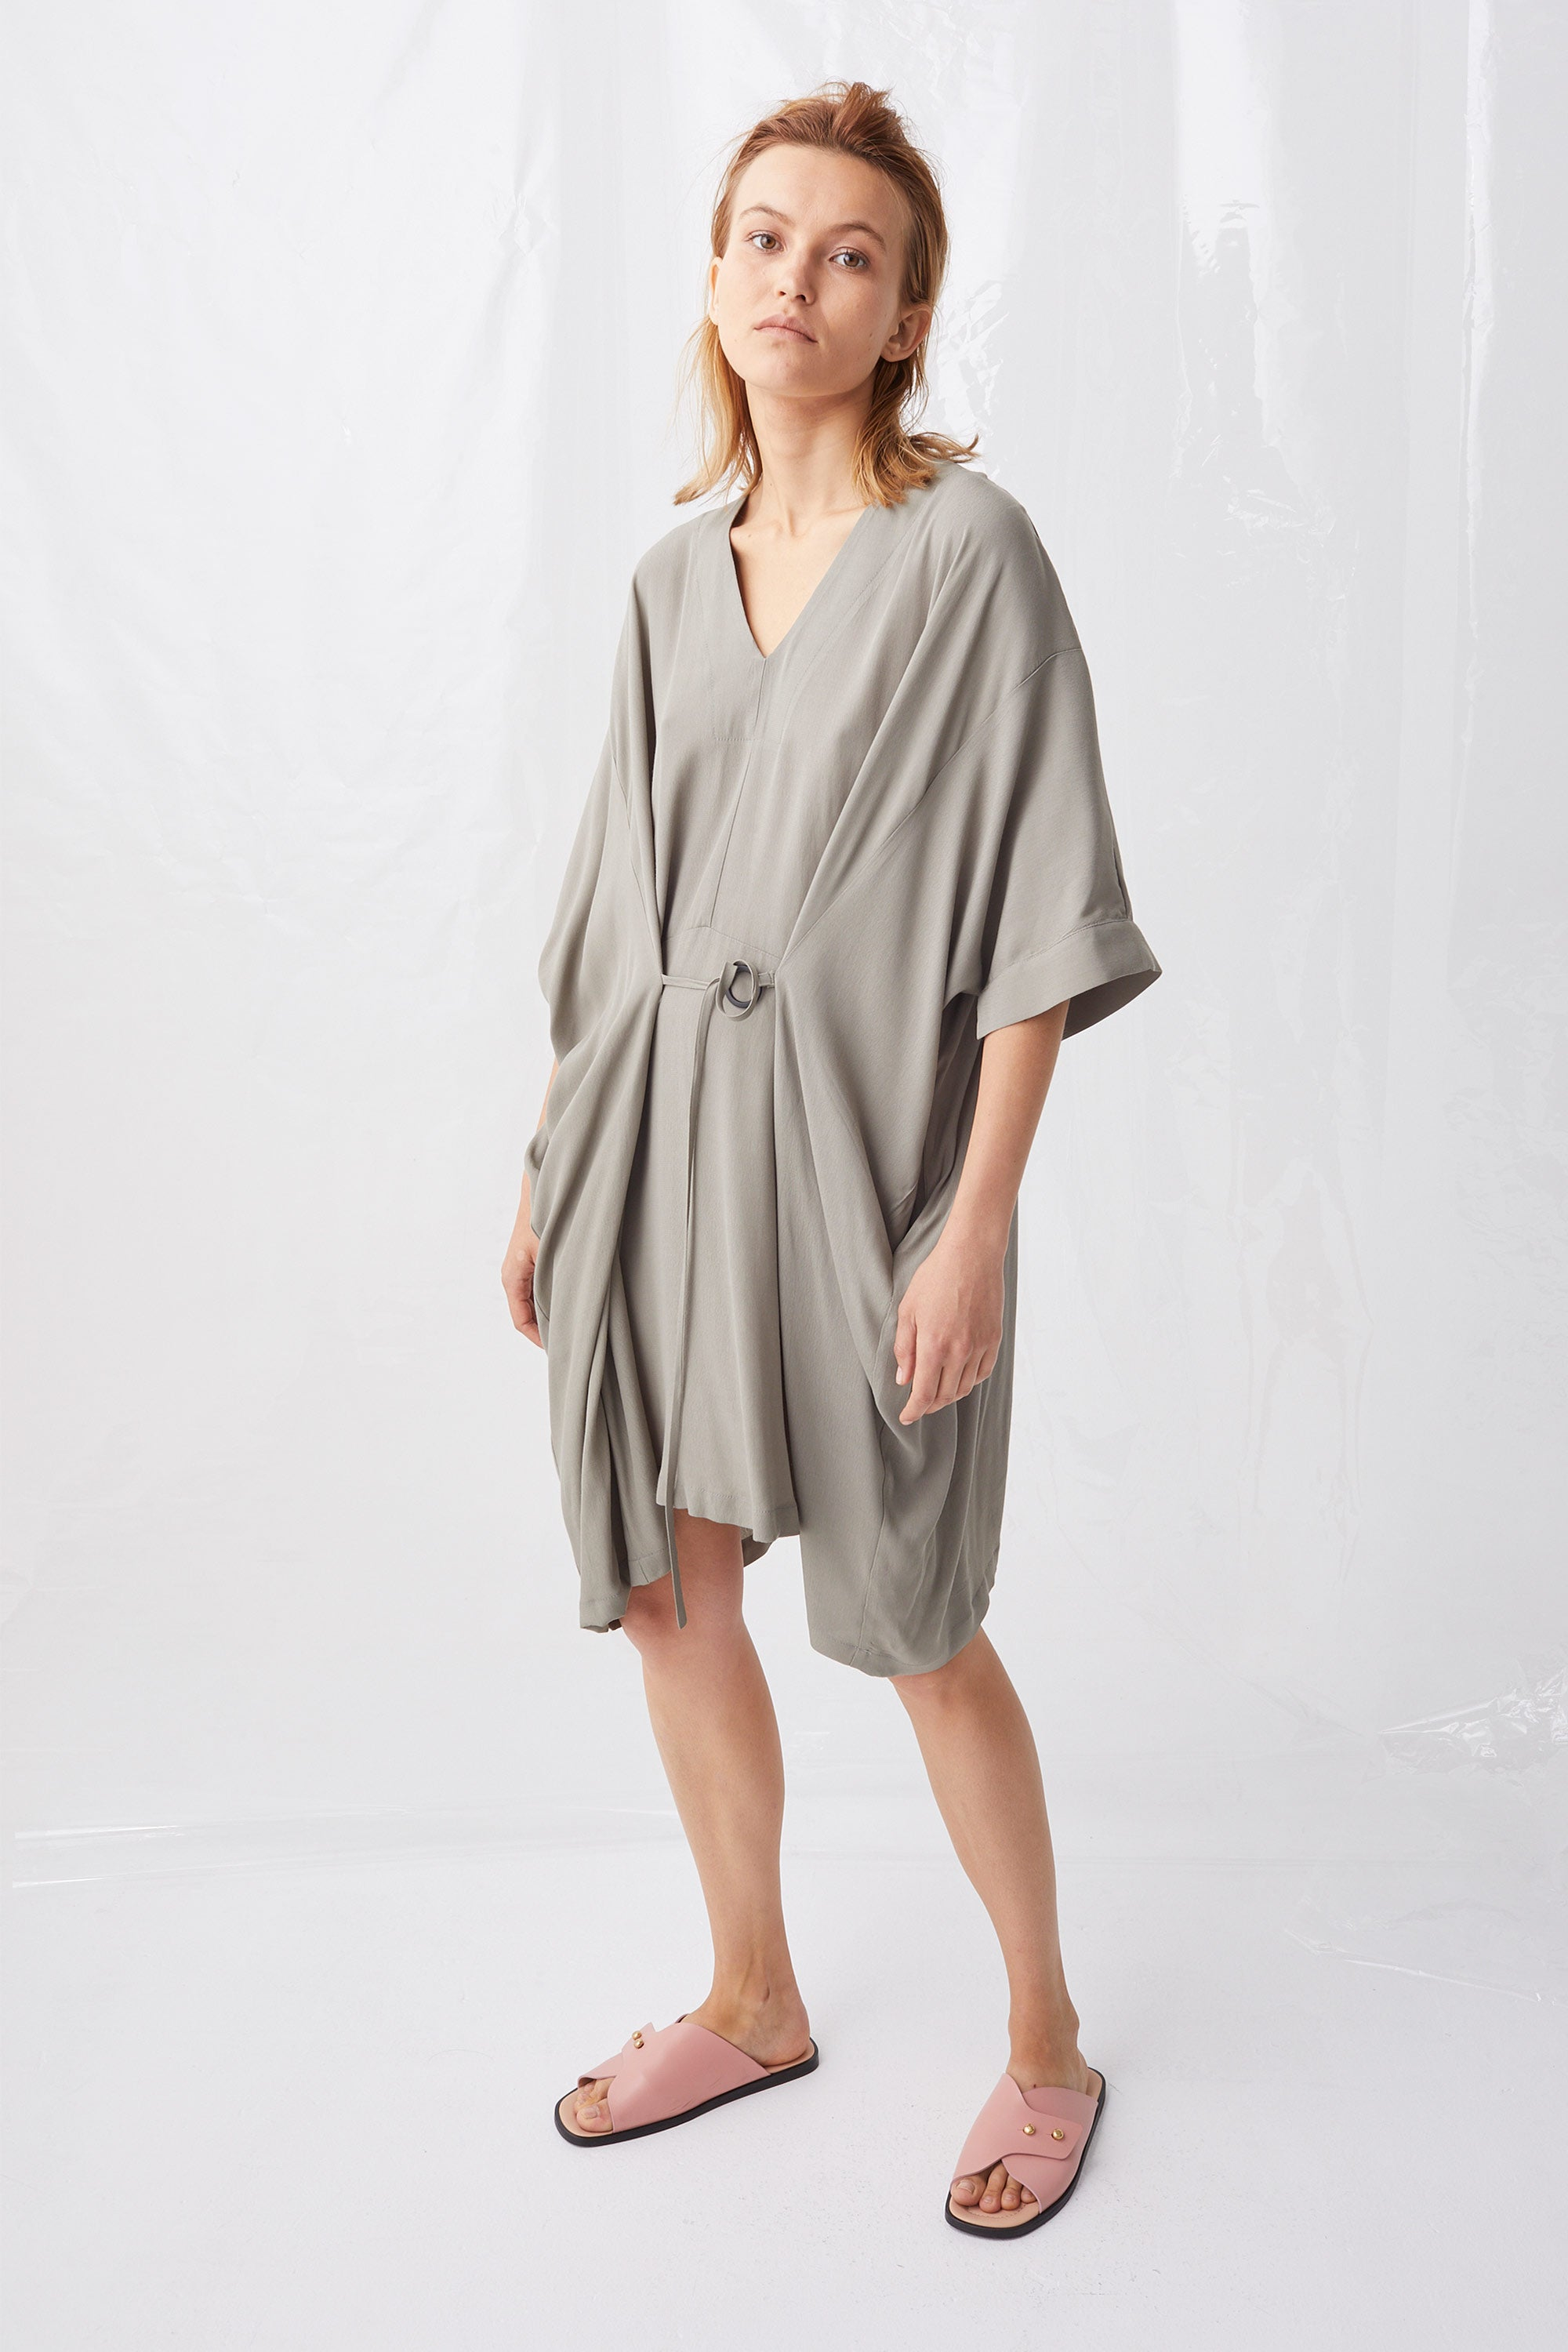 Ricochet NZ Fashion Designer Clothing Boutique SS18 Anda Dress Viscose Crepe Oversize Made in NZ